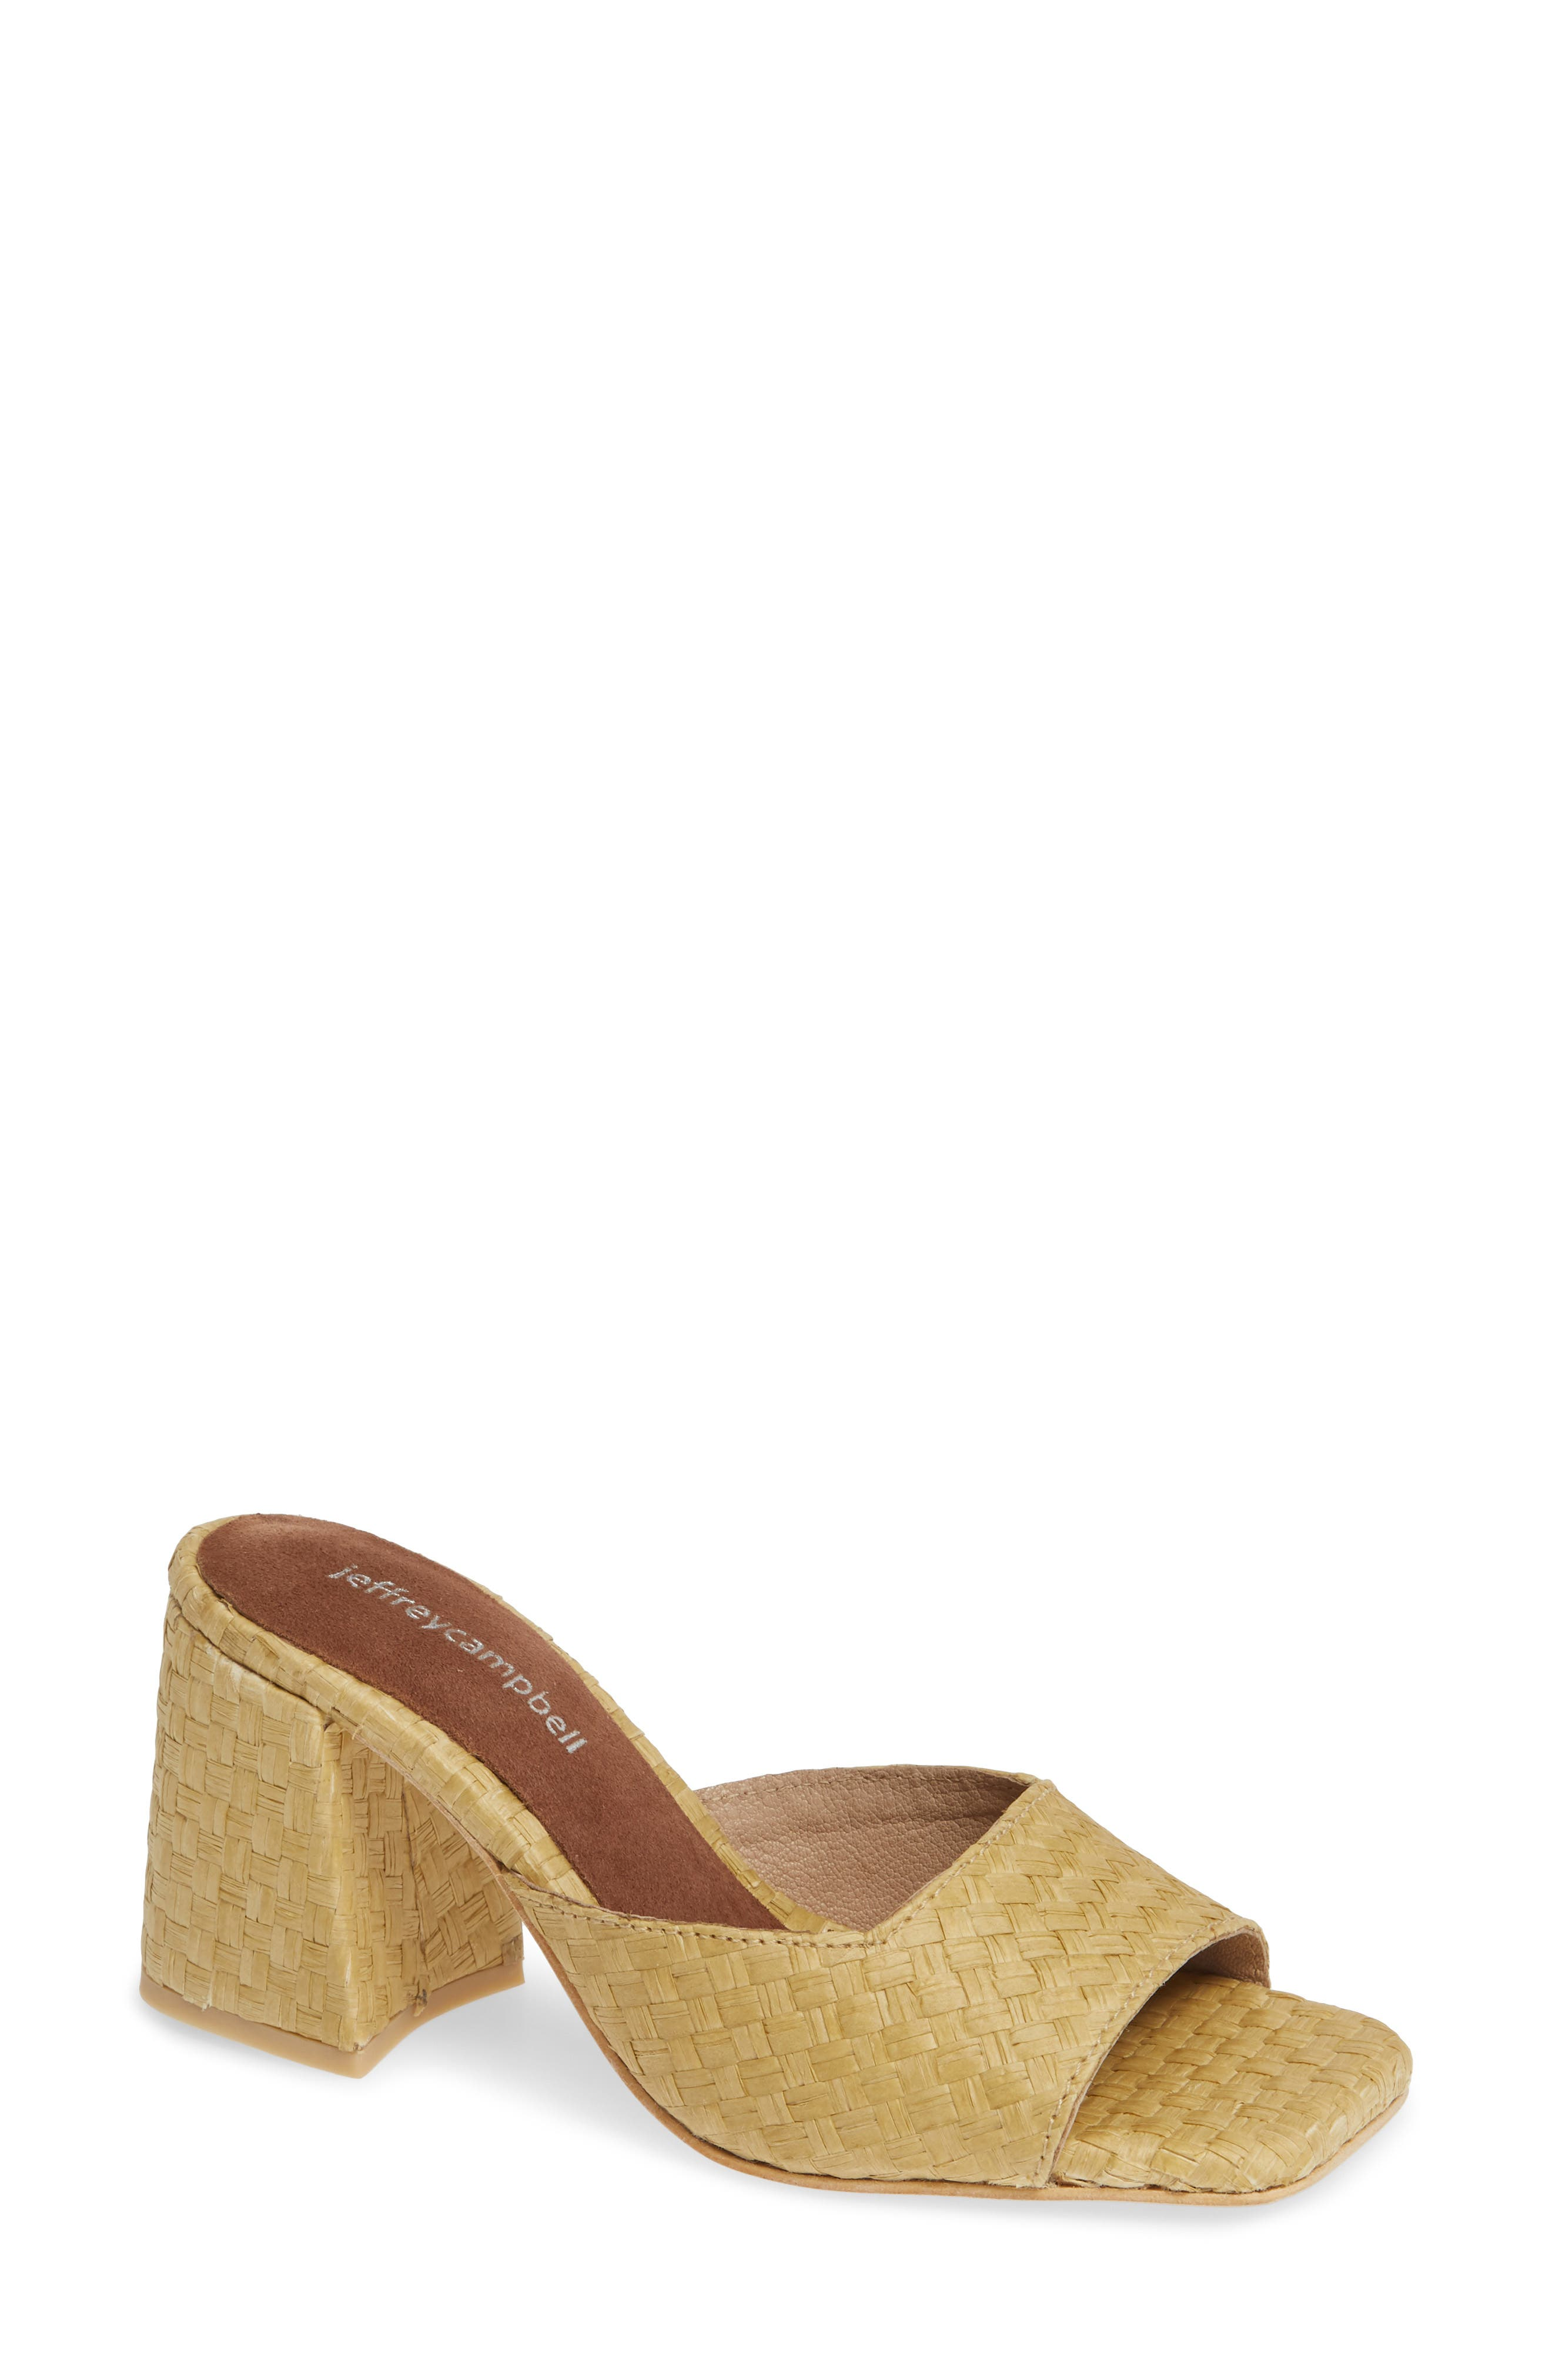 JEFFREY CAMPBELL Mélange Raffia Slide Sandal, Main, color, 200